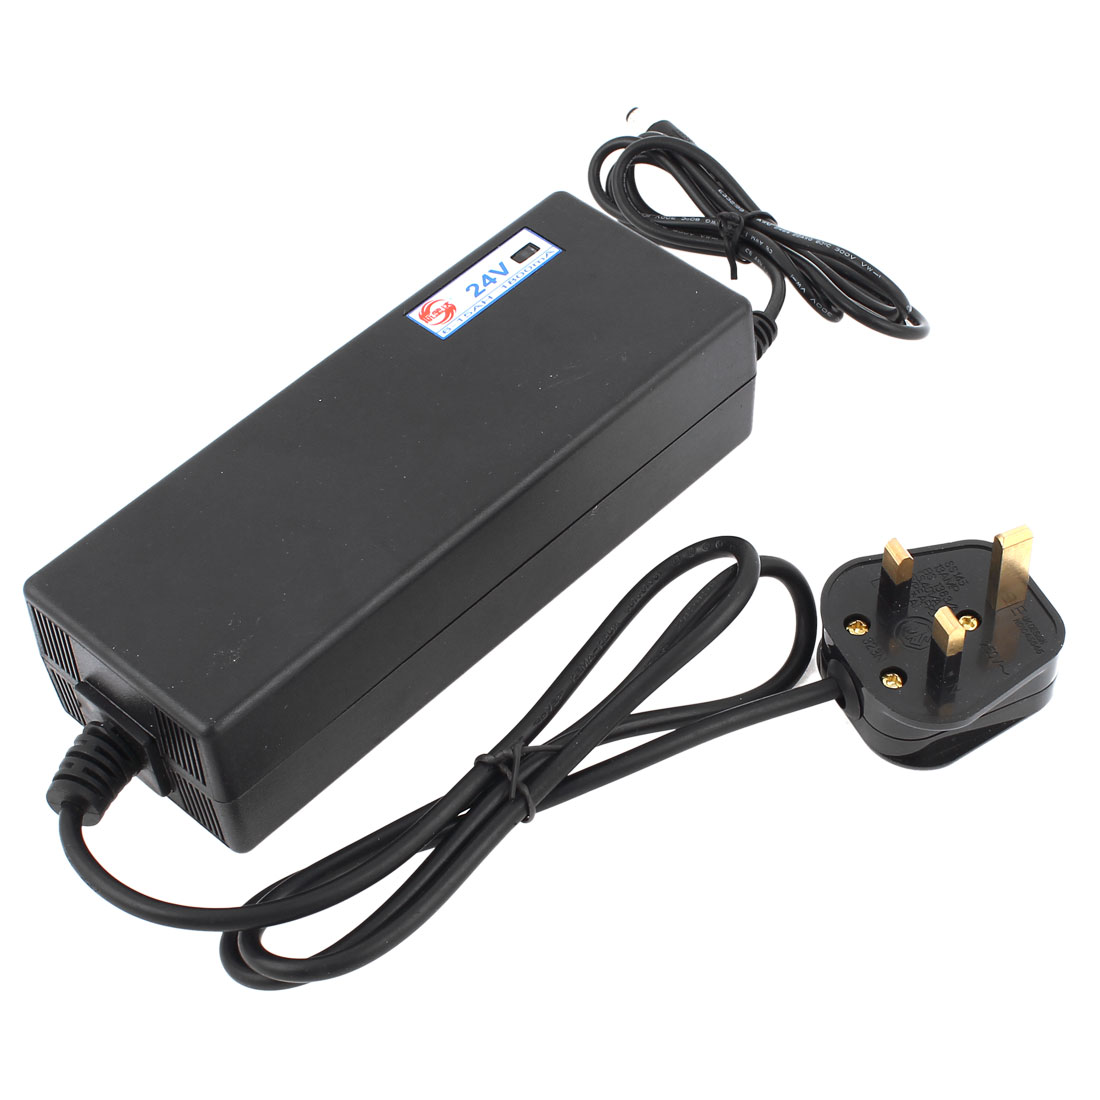 UK Plug DC Socket 24V 6-15AH Electric Bike Scooters Battery Charger AC 170V-240V